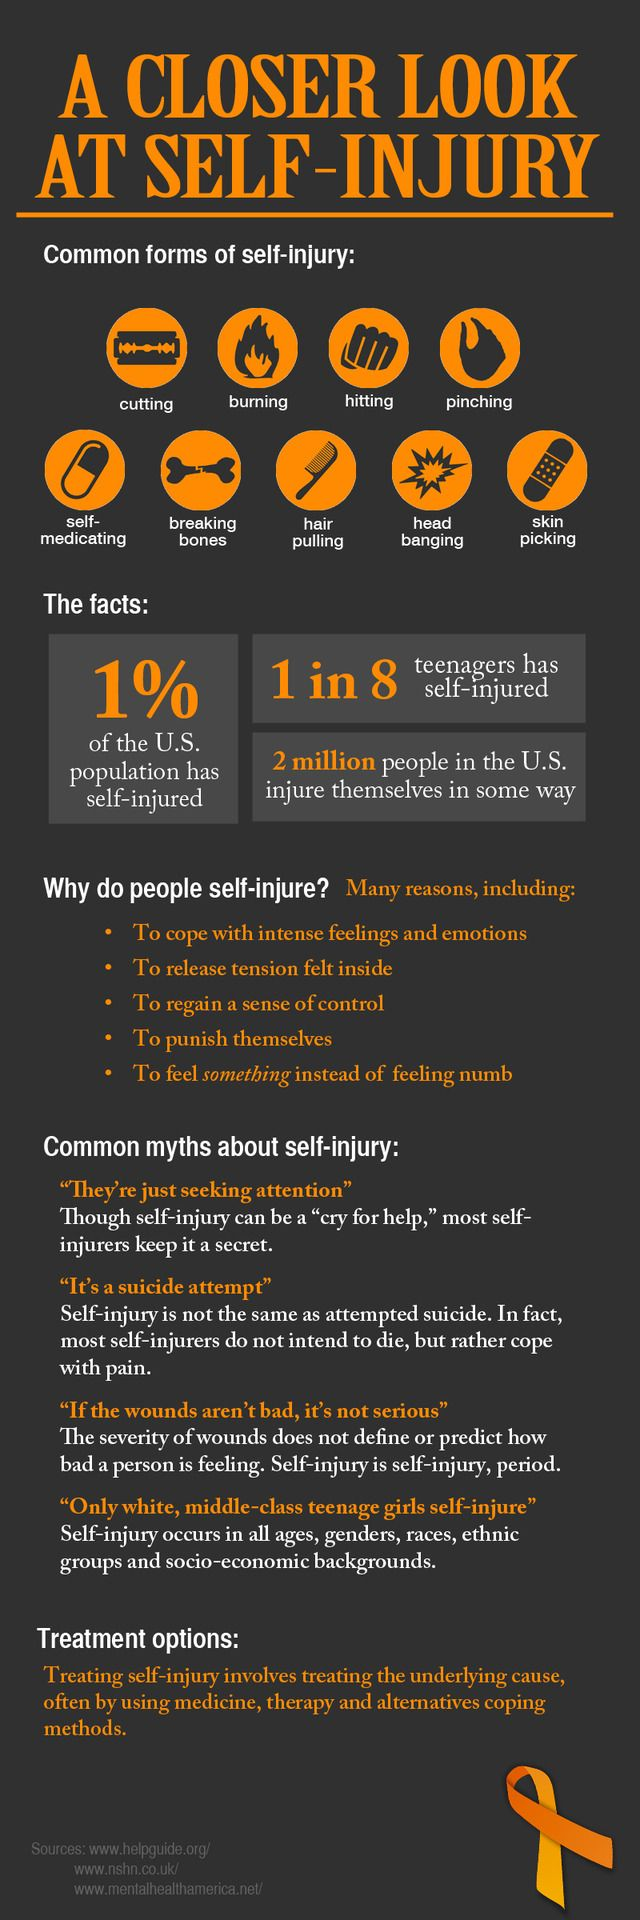 best images about self injury its ok counseling 17 best images about self injury its ok counseling and dr who